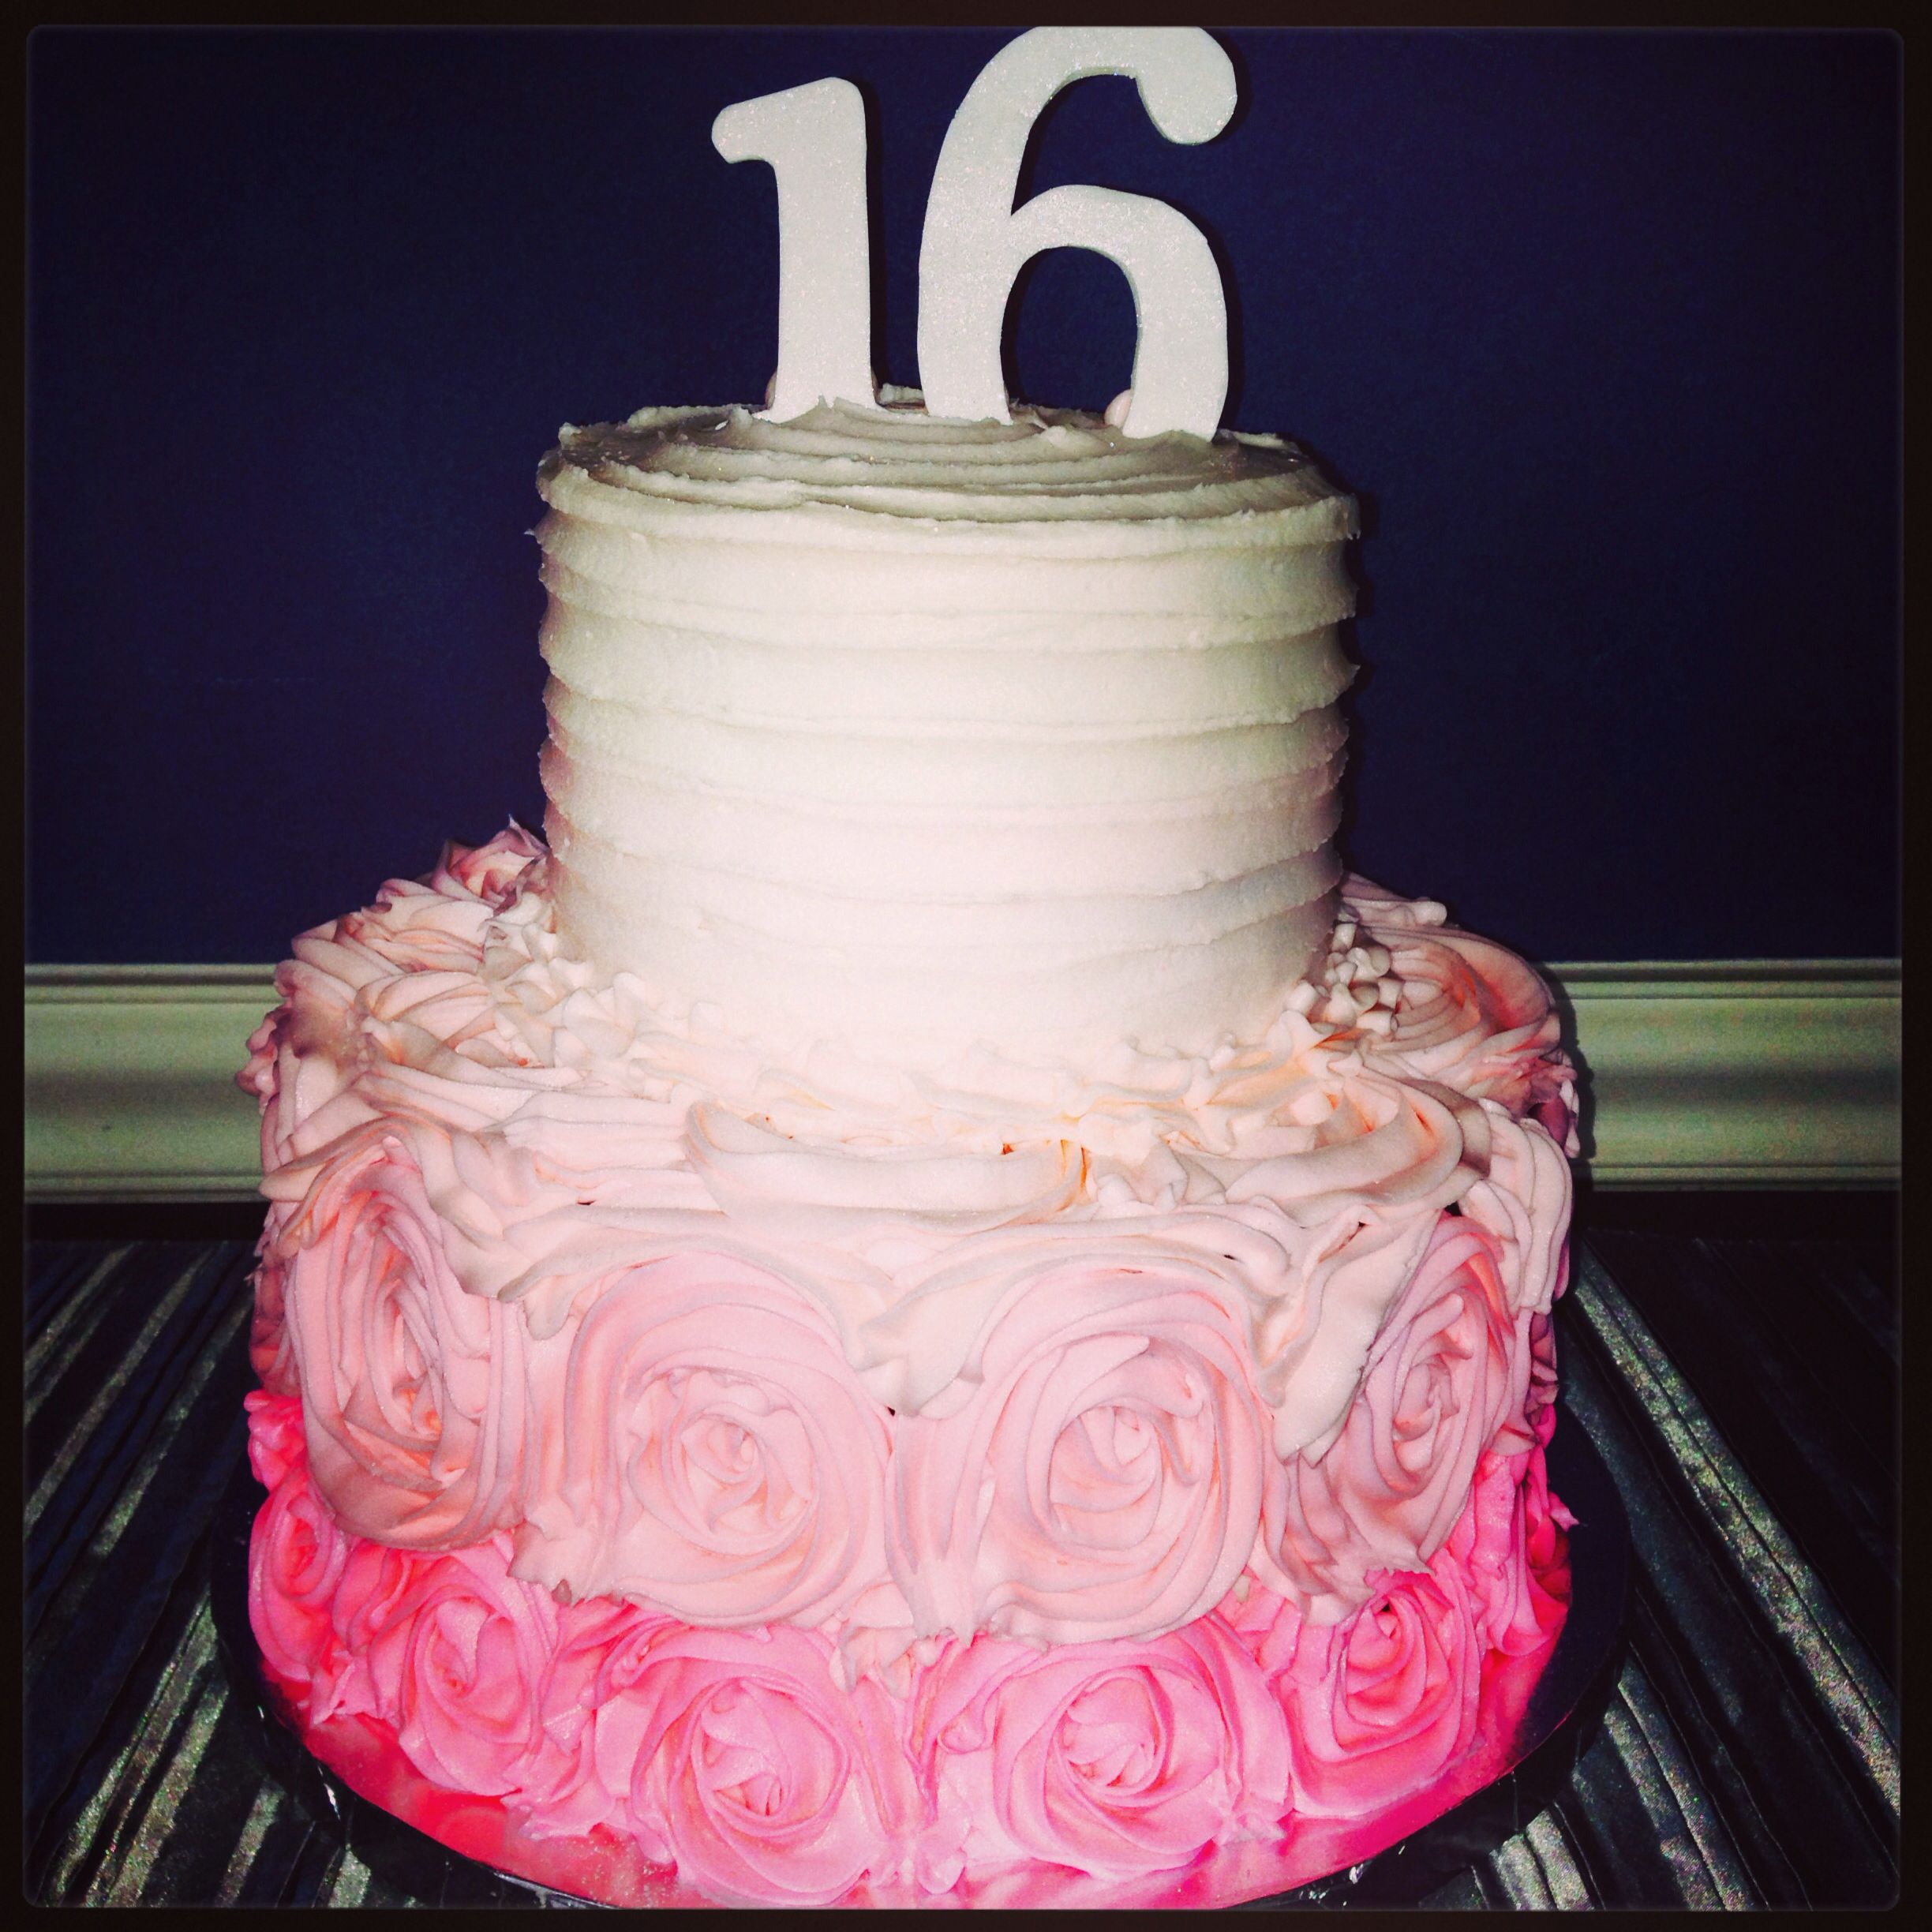 Simple Sweet 16 Cake I Love The Roses Just Not The Pink Sweet